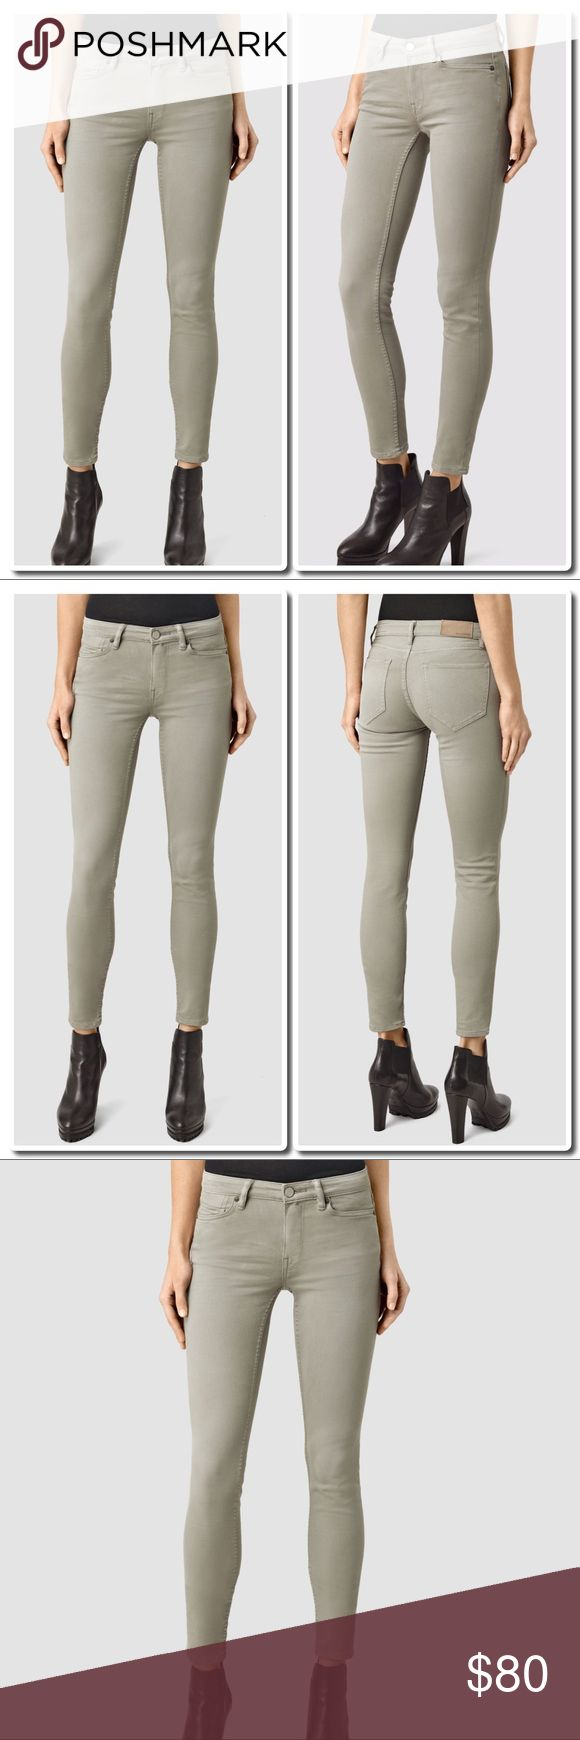 All Saints Mast Garment Dye Jeans Crafted in premium stretch denim, our super skinny, low rise Mast jeans are perfect for all year round. 90% Cotton 8% Polyester 2% Elastane - Low rise. Super skinny leg. 5 pocket styling. Zip fly. Stretch denim. SIZE & FIT Skinny fit. Light Khaki Green All Saints Jeans Skinny